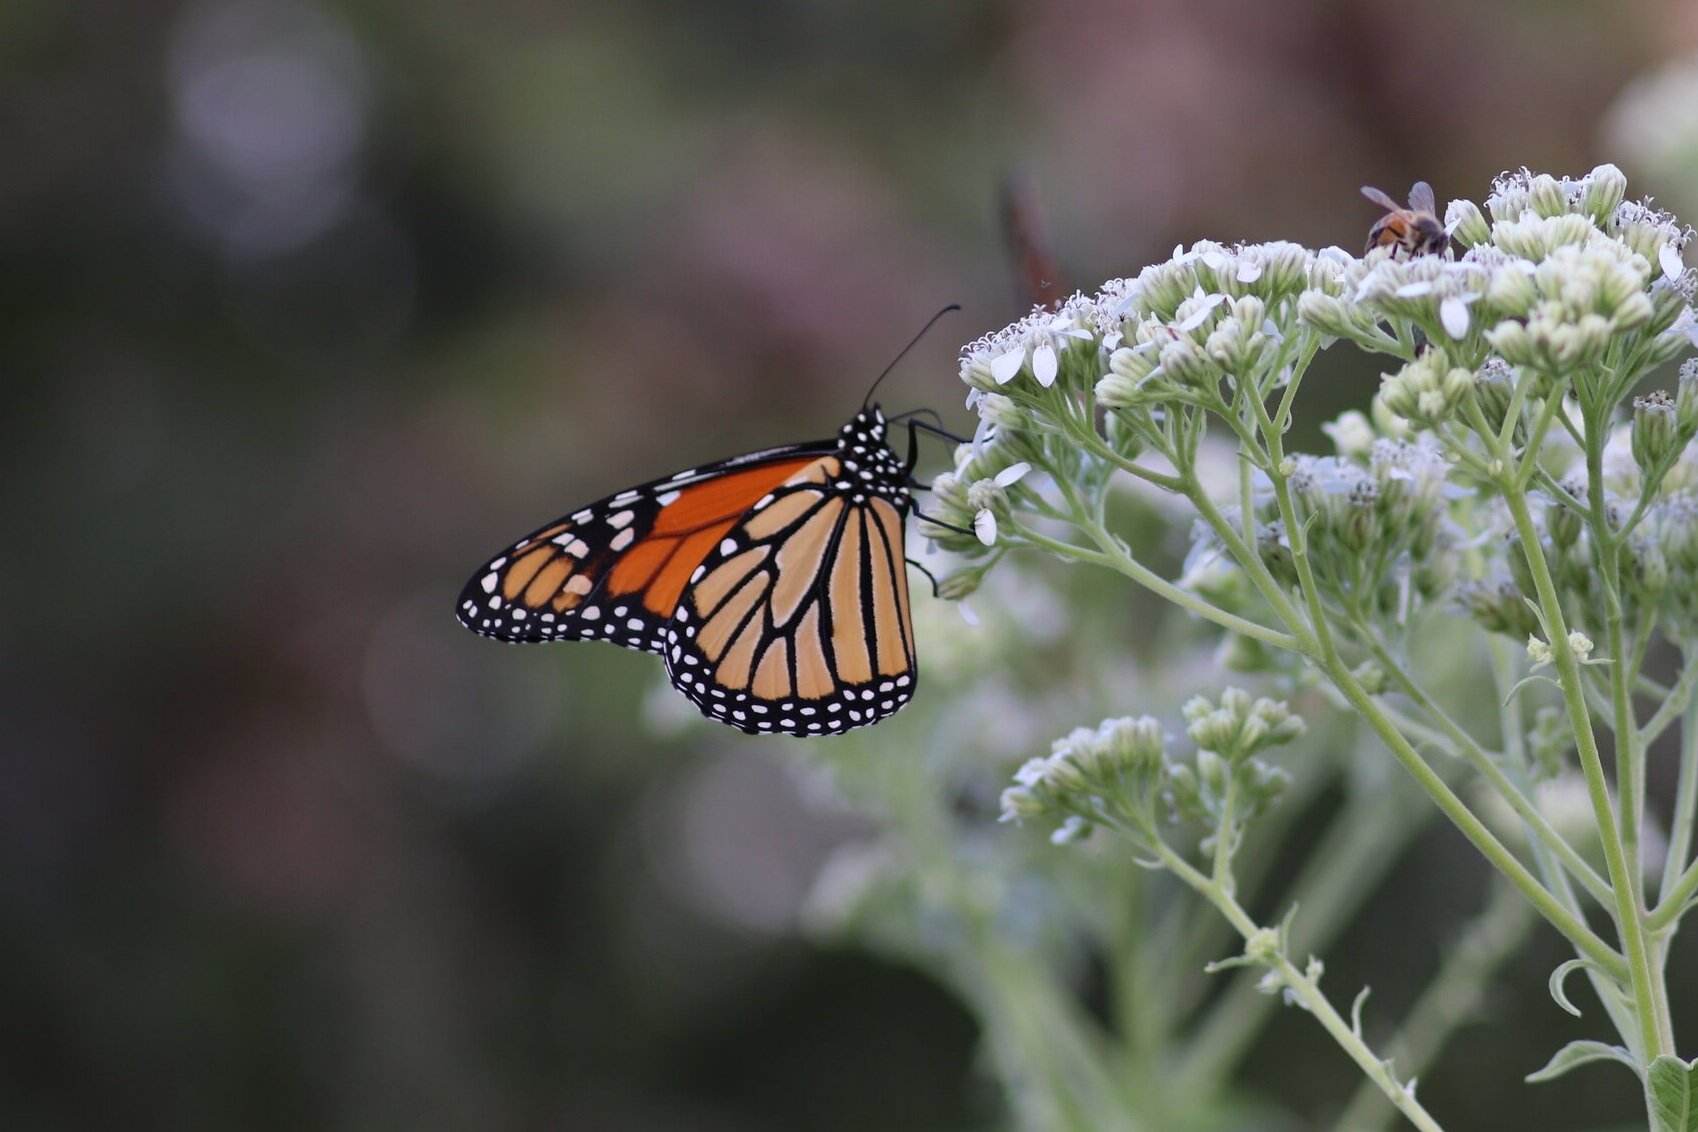 Texas Monarch Festival - October 17-20Join Texas Discovery Gardens and the National Wildlife Federation to celebrate the marvelous monarch butterfly!